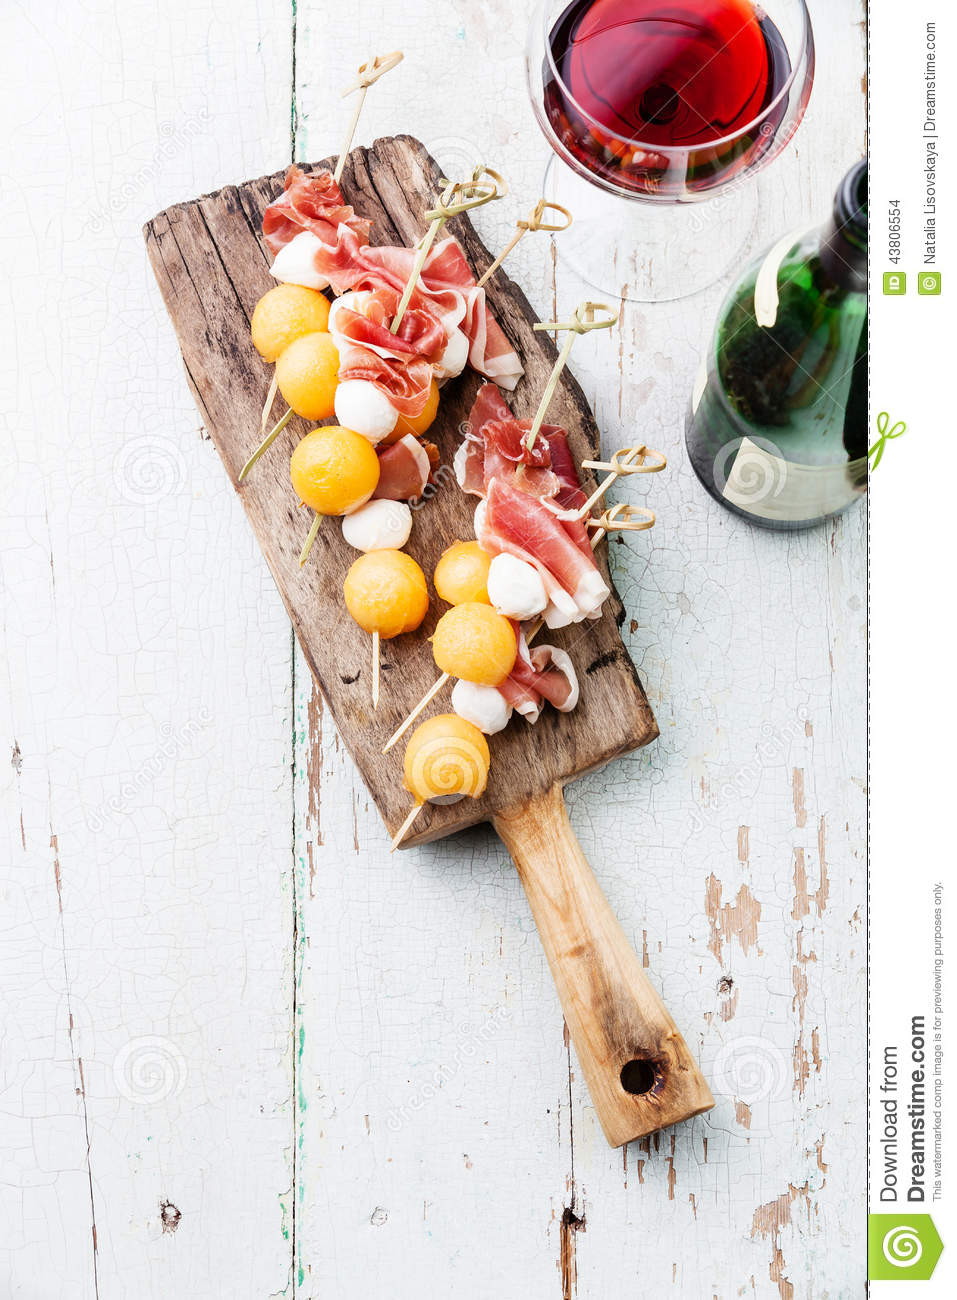 Mozzarella prosciutto melon canapes stock photo image for Prosciutto and melon canape